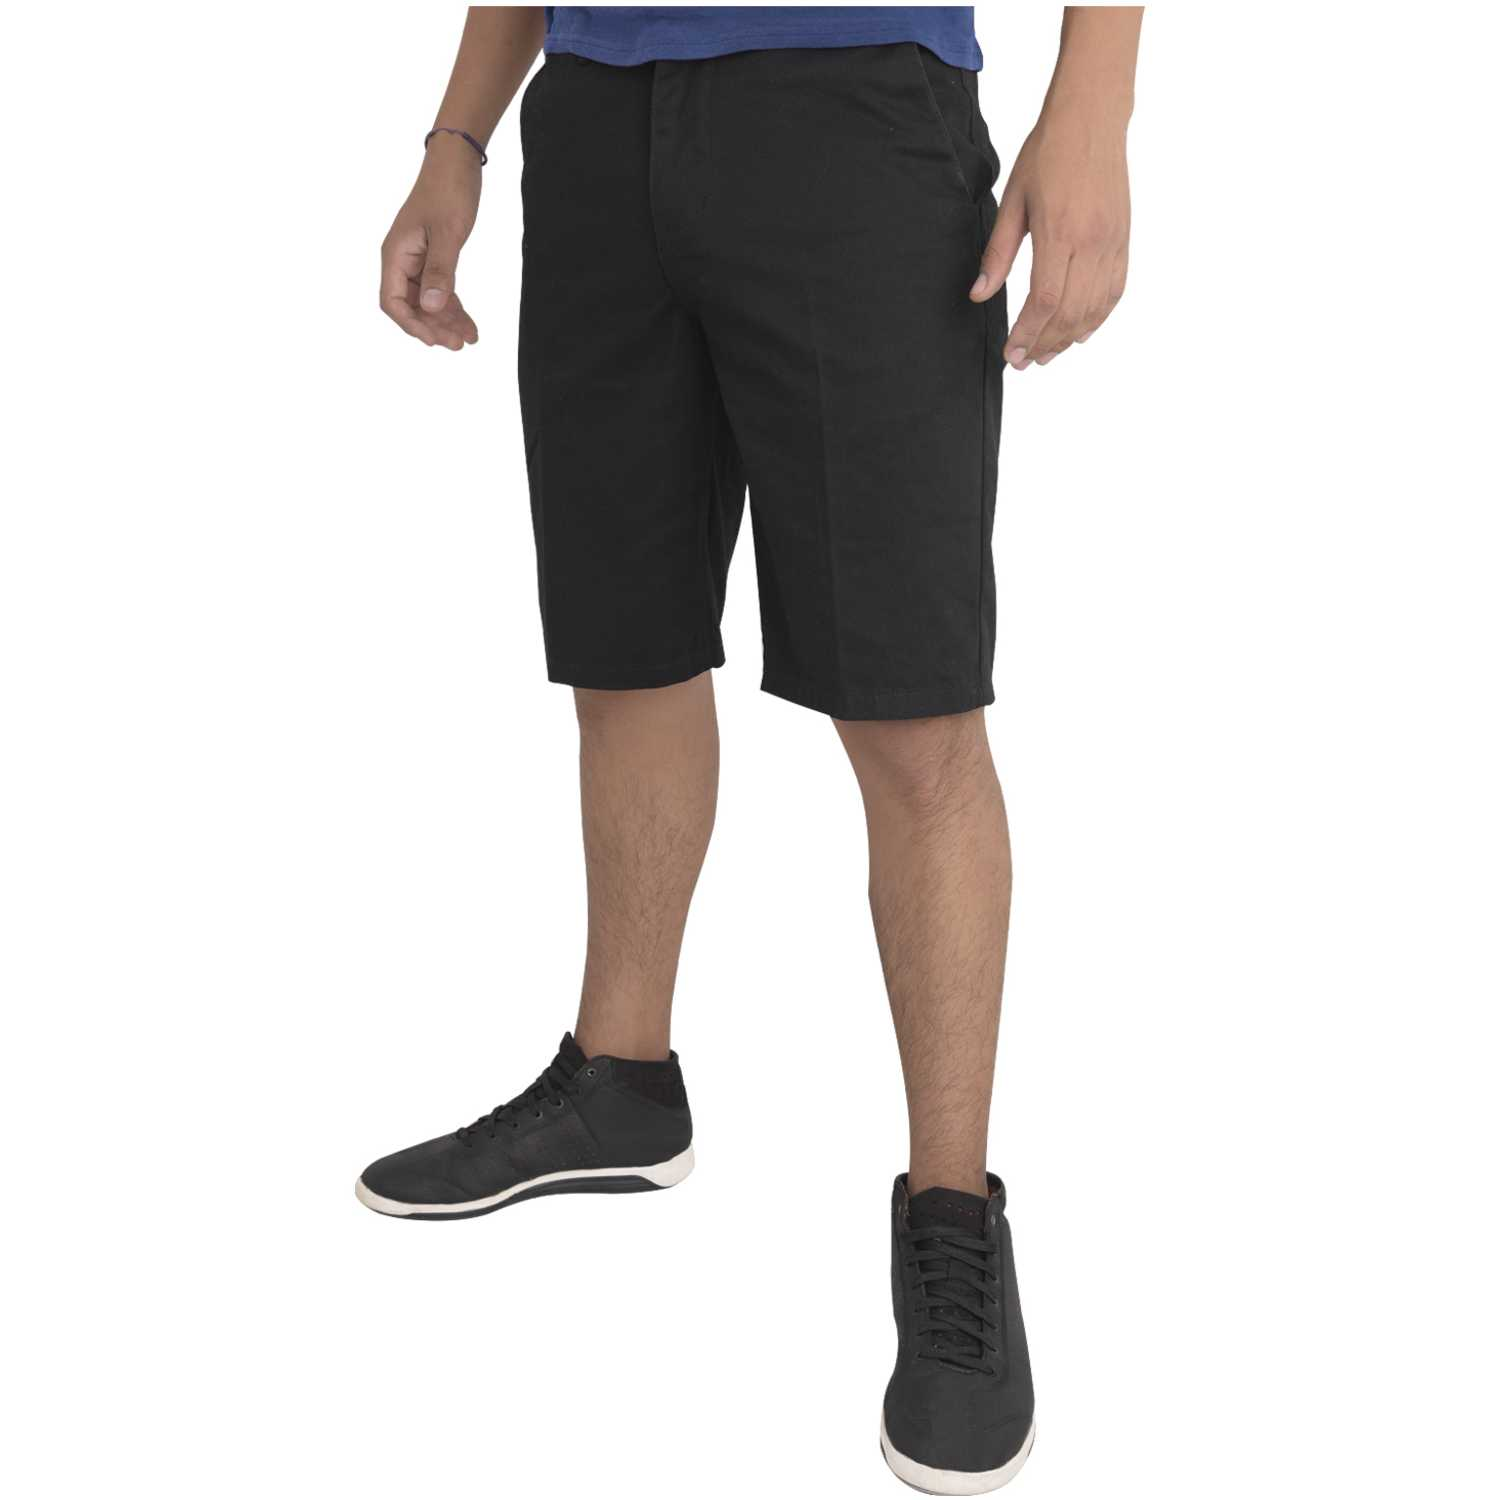 Hurley one and only chino walkshort trsr Negro Cargo